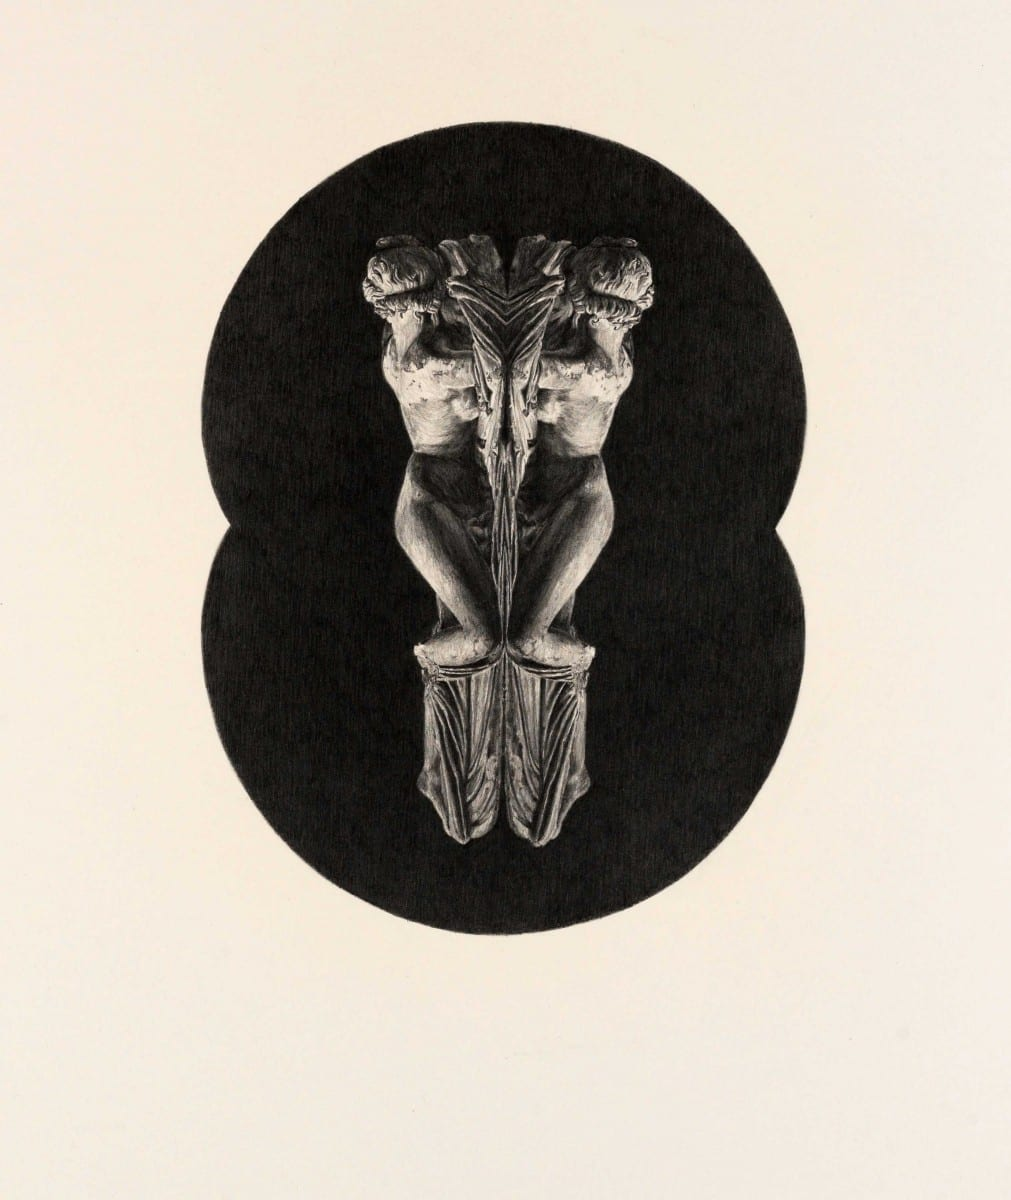 Mat Chivers, Perceptual Ecology, pencil on paper, 136 x 101 cm (apple bough), 75 x 55 cm (hermaphrodite), 2011 © Peter Thorpe